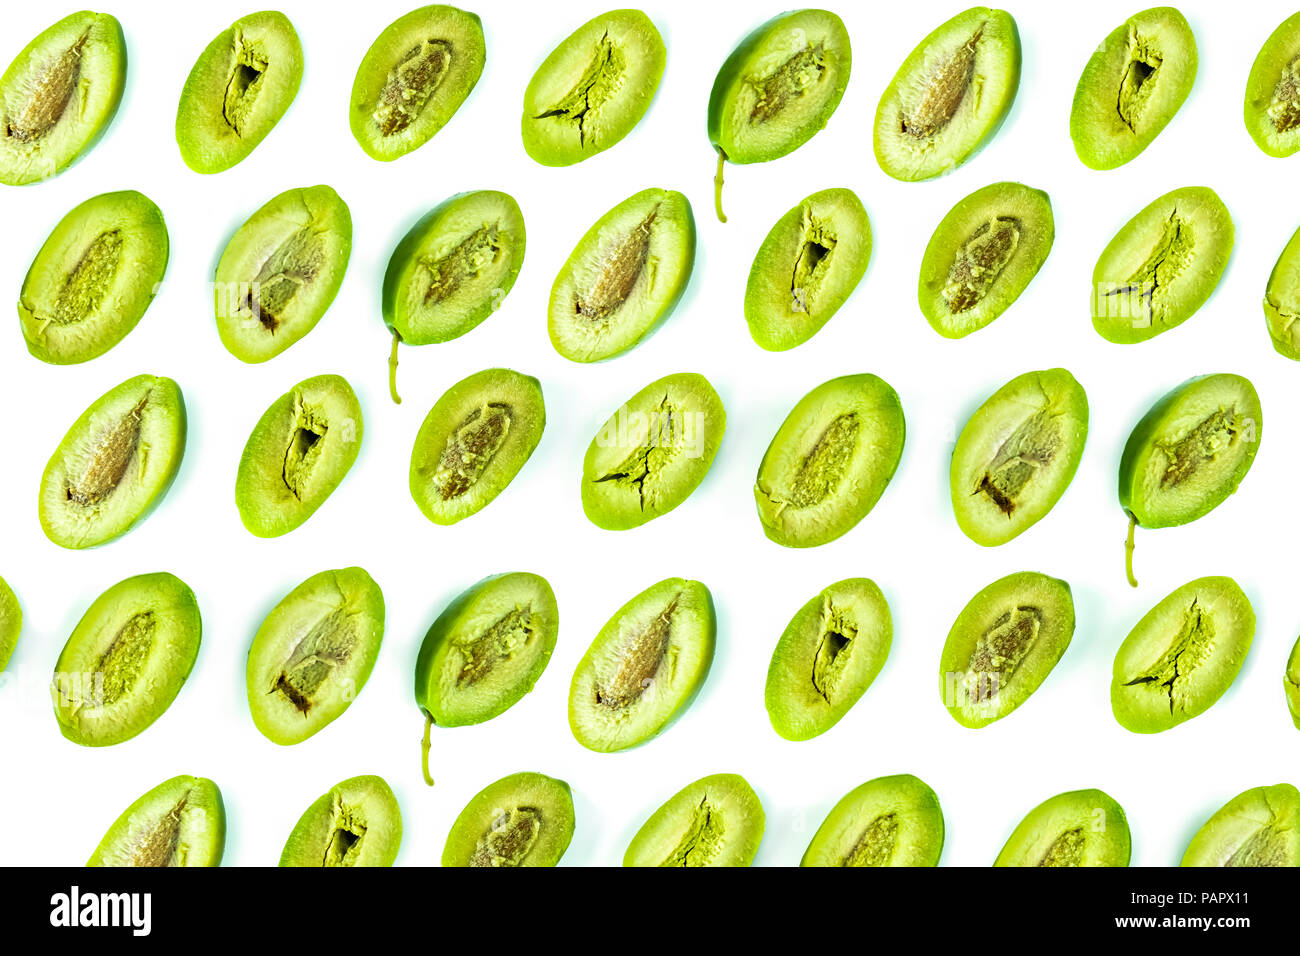 Bright top view pattern of fresh green olives cut in half on white background. Shot from above of multiple olives - Stock Image